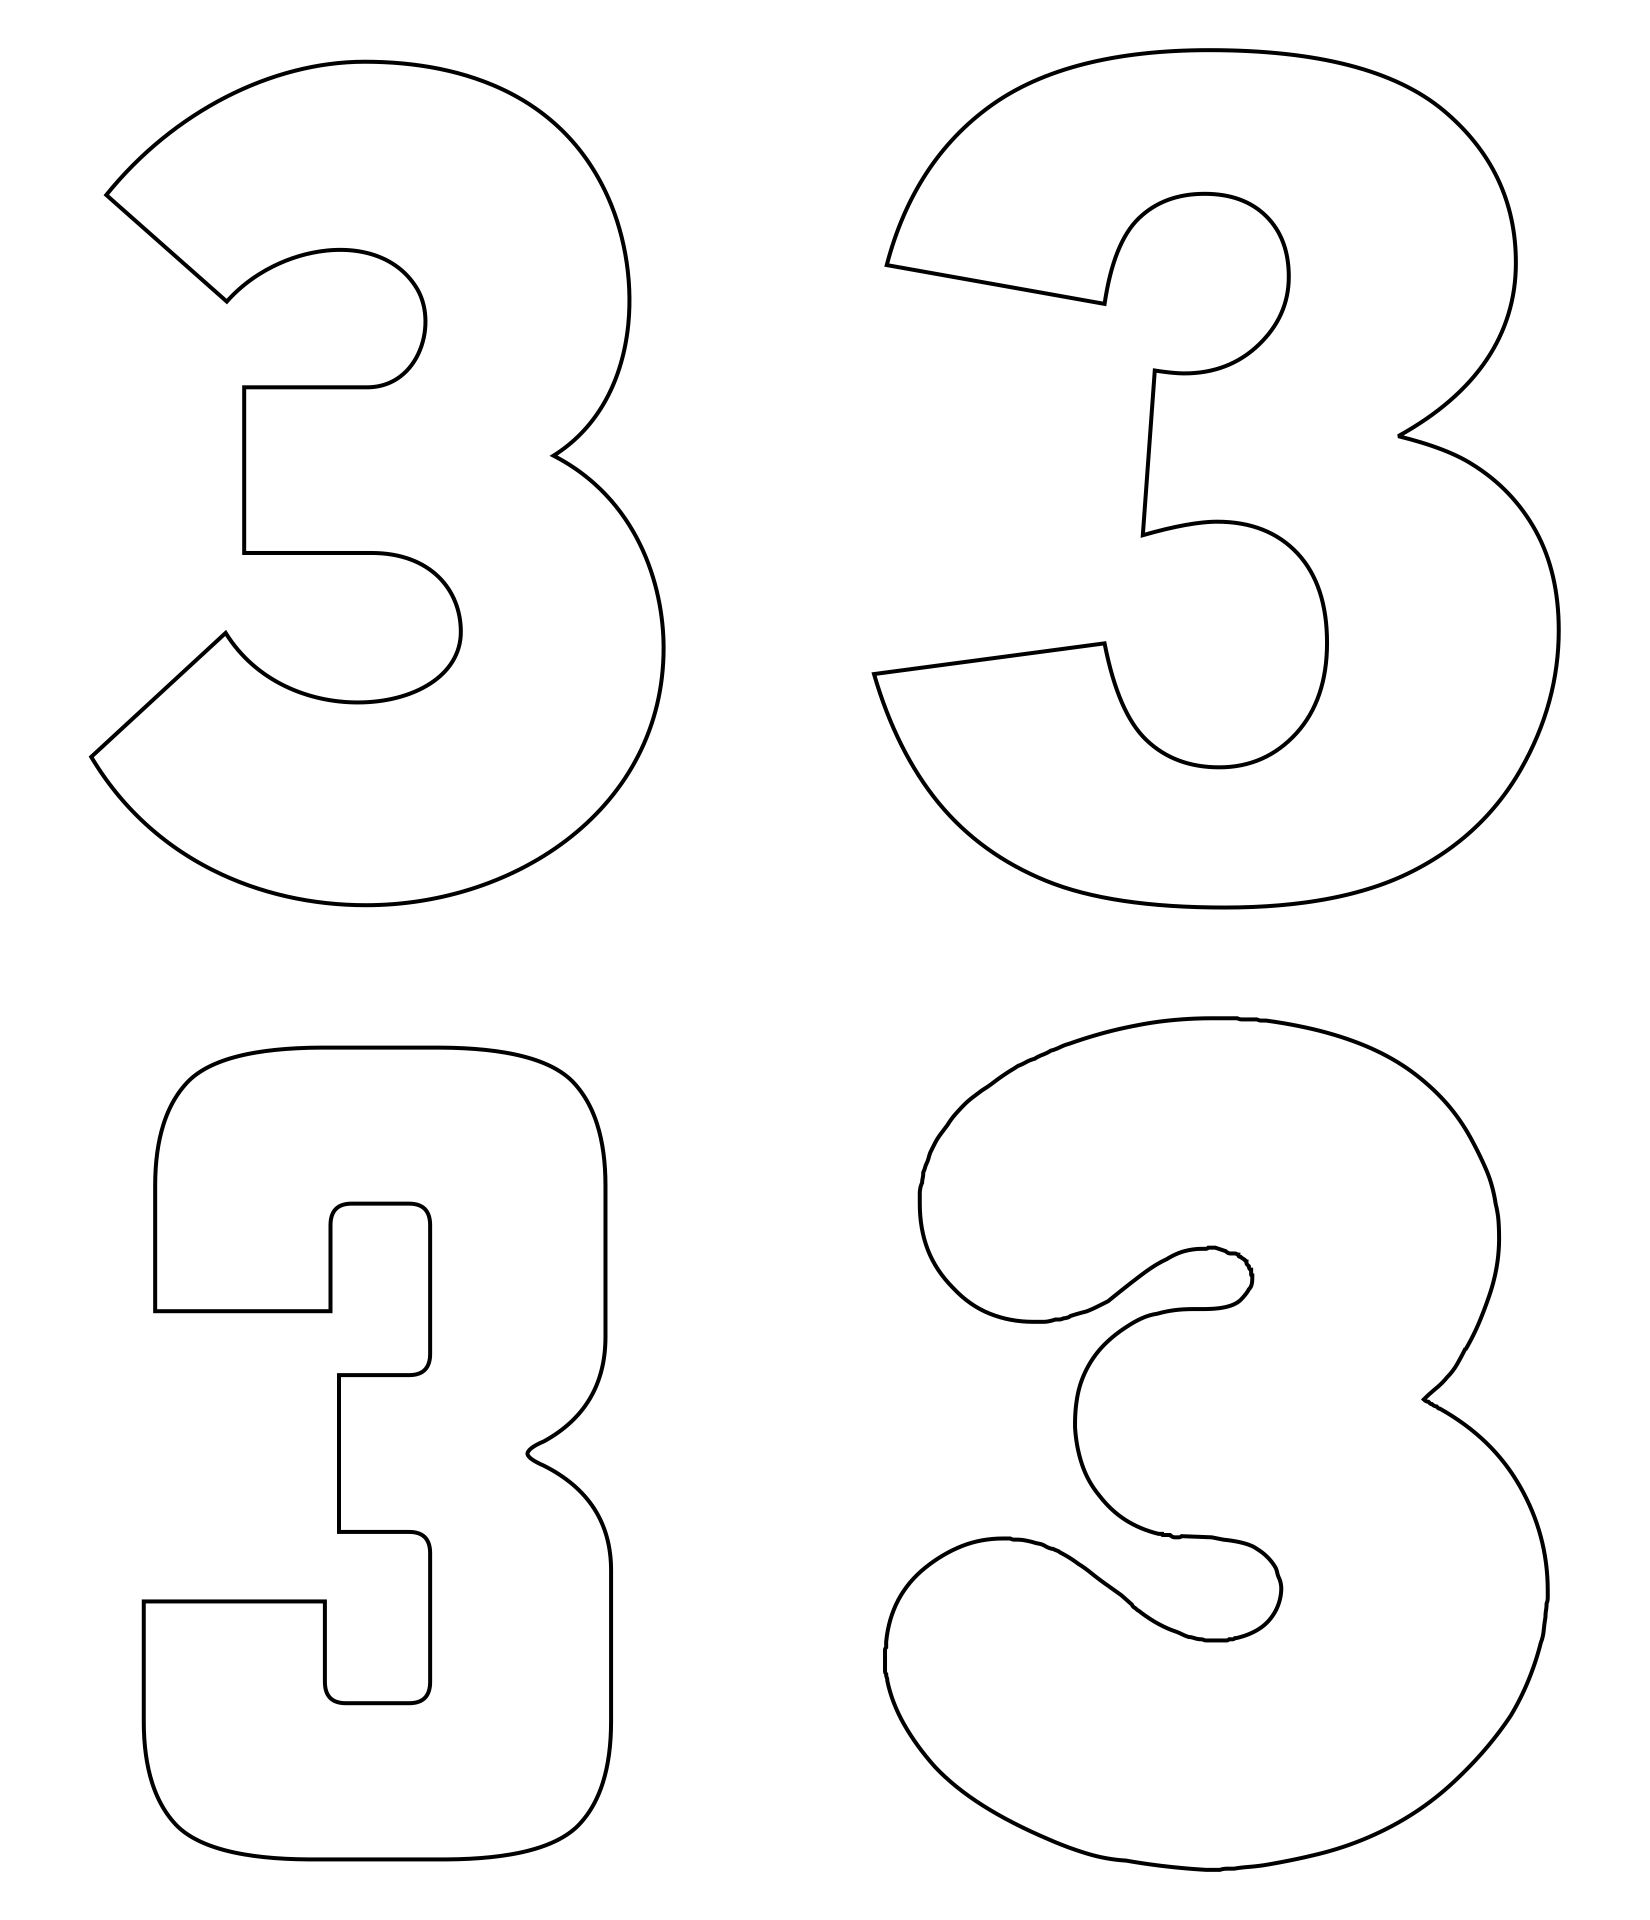 7 Best Images Of Large Printable Numbers 1 9 Printable Numbers 1